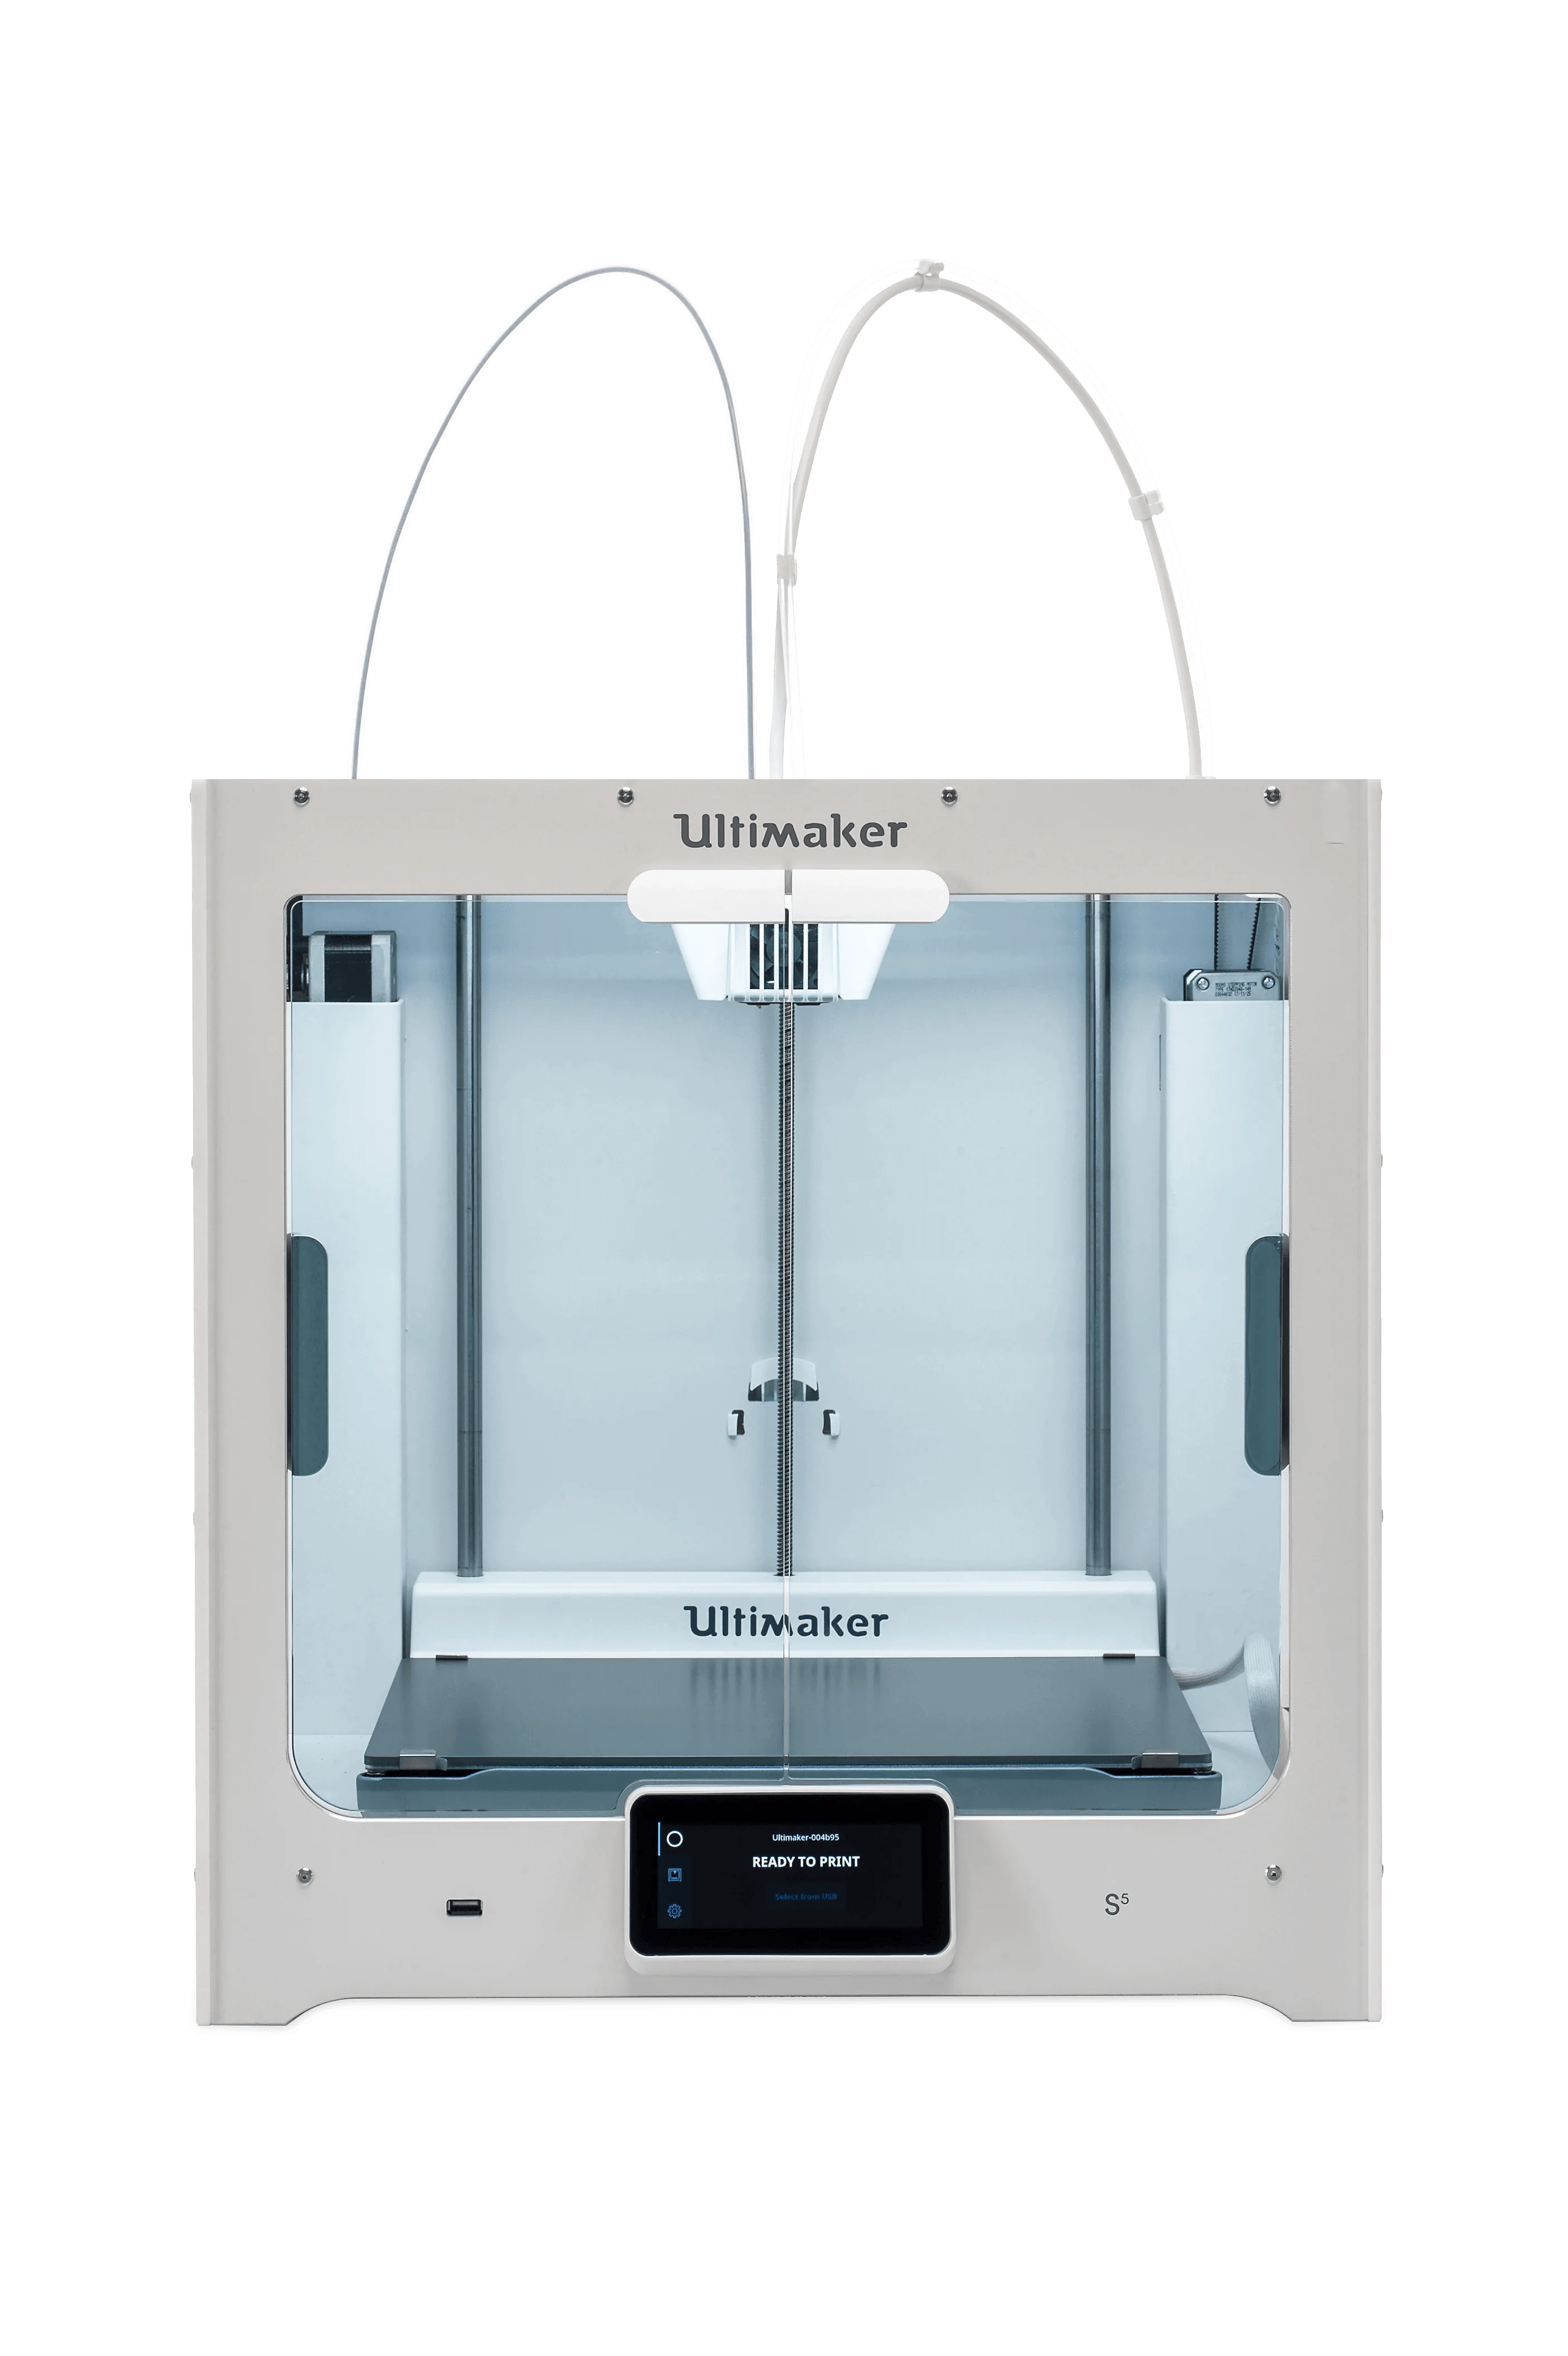 3d Printer Canada Ultimaker Lulzbot 3d Printers In Canada Print Your Mind 3d